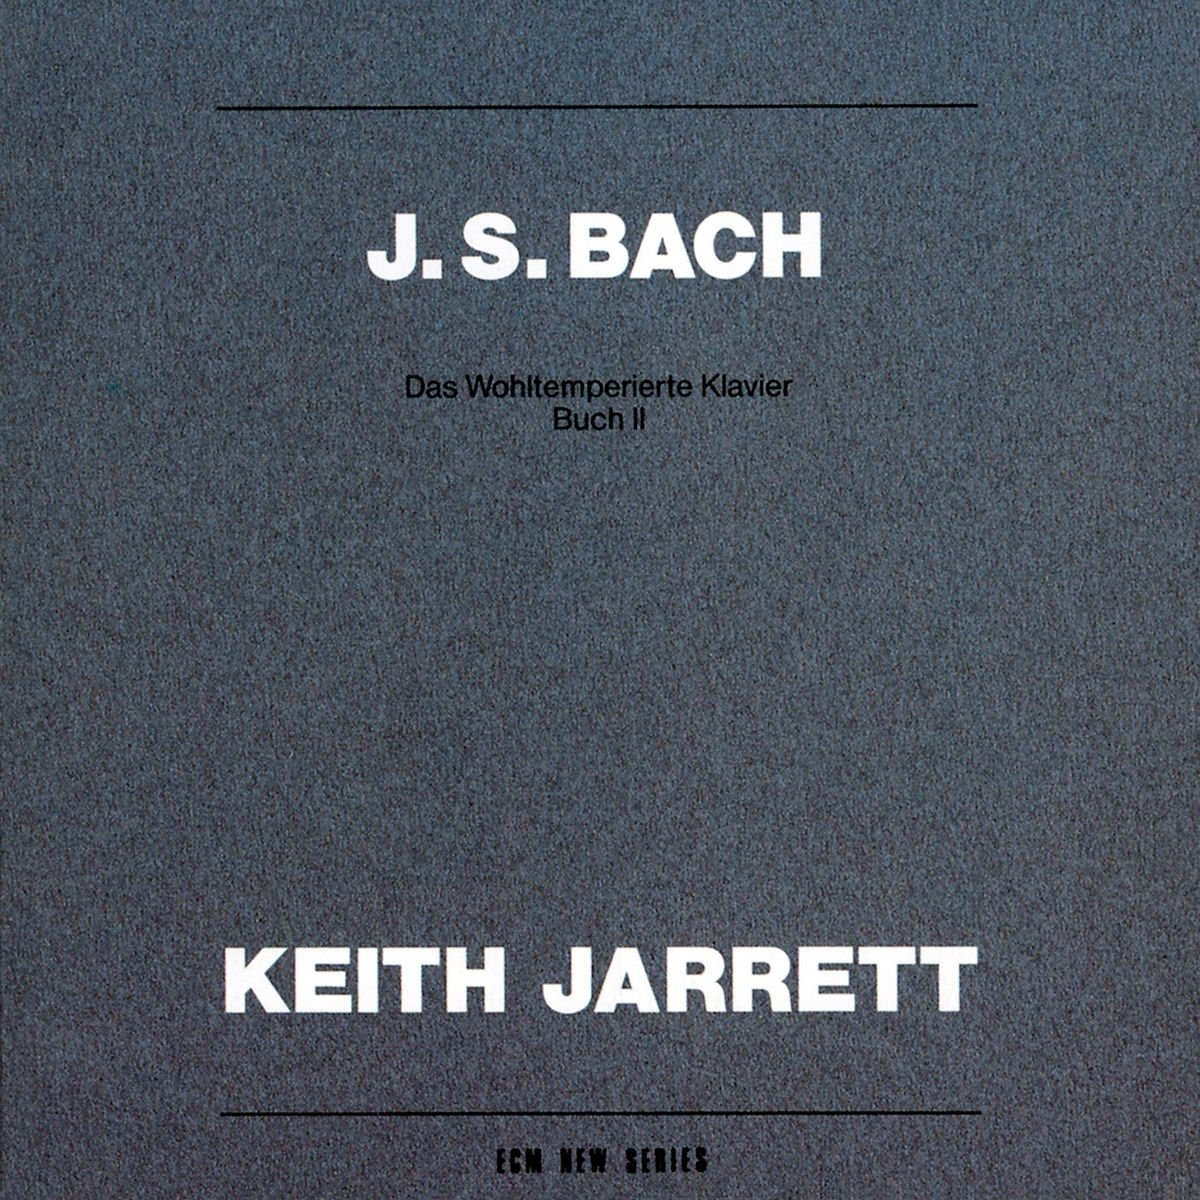 Bach: 40% OFF SEAL limited product Cheap Sale Well-Tempered Clavier Book Keith Jarrett 2